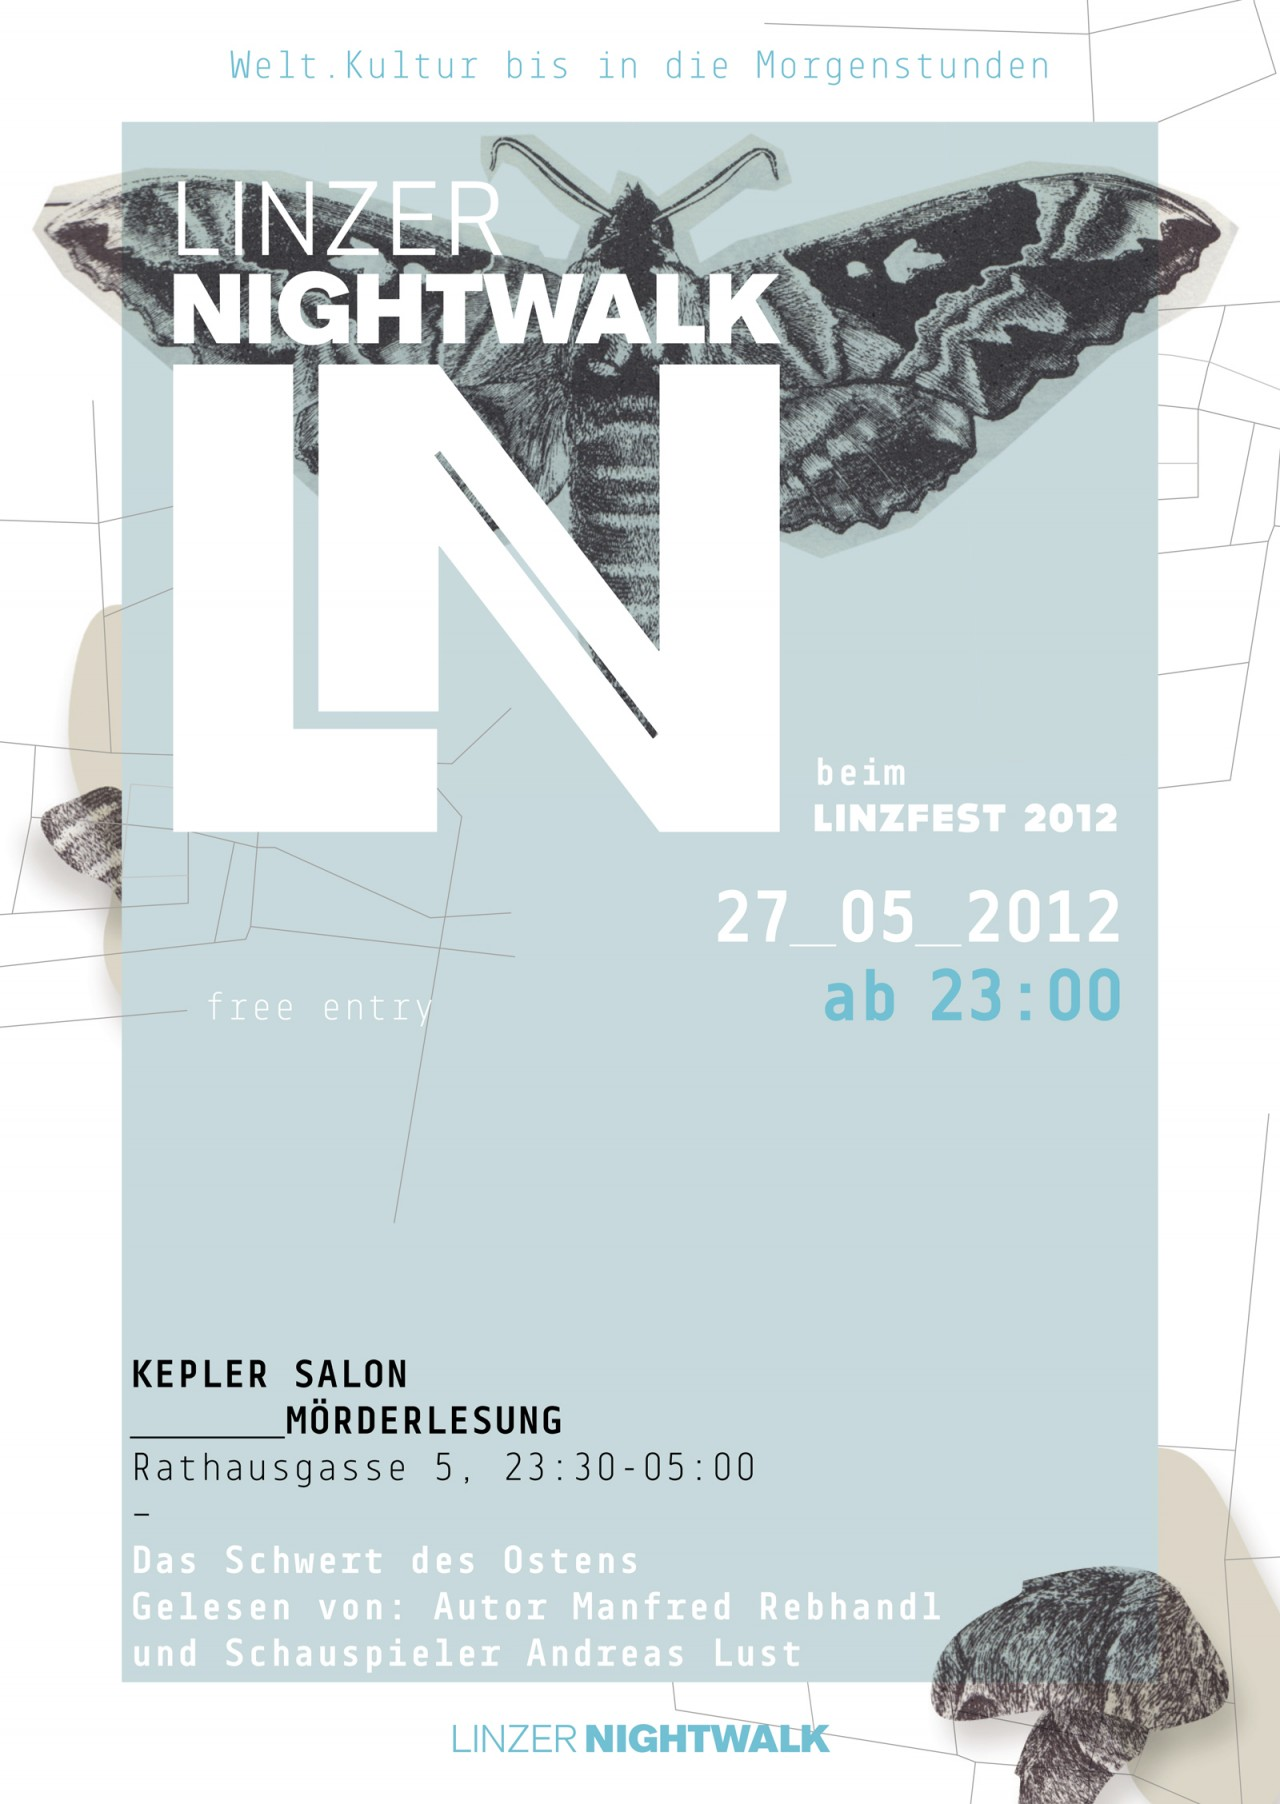 LINZER NIGHTWALK 2012